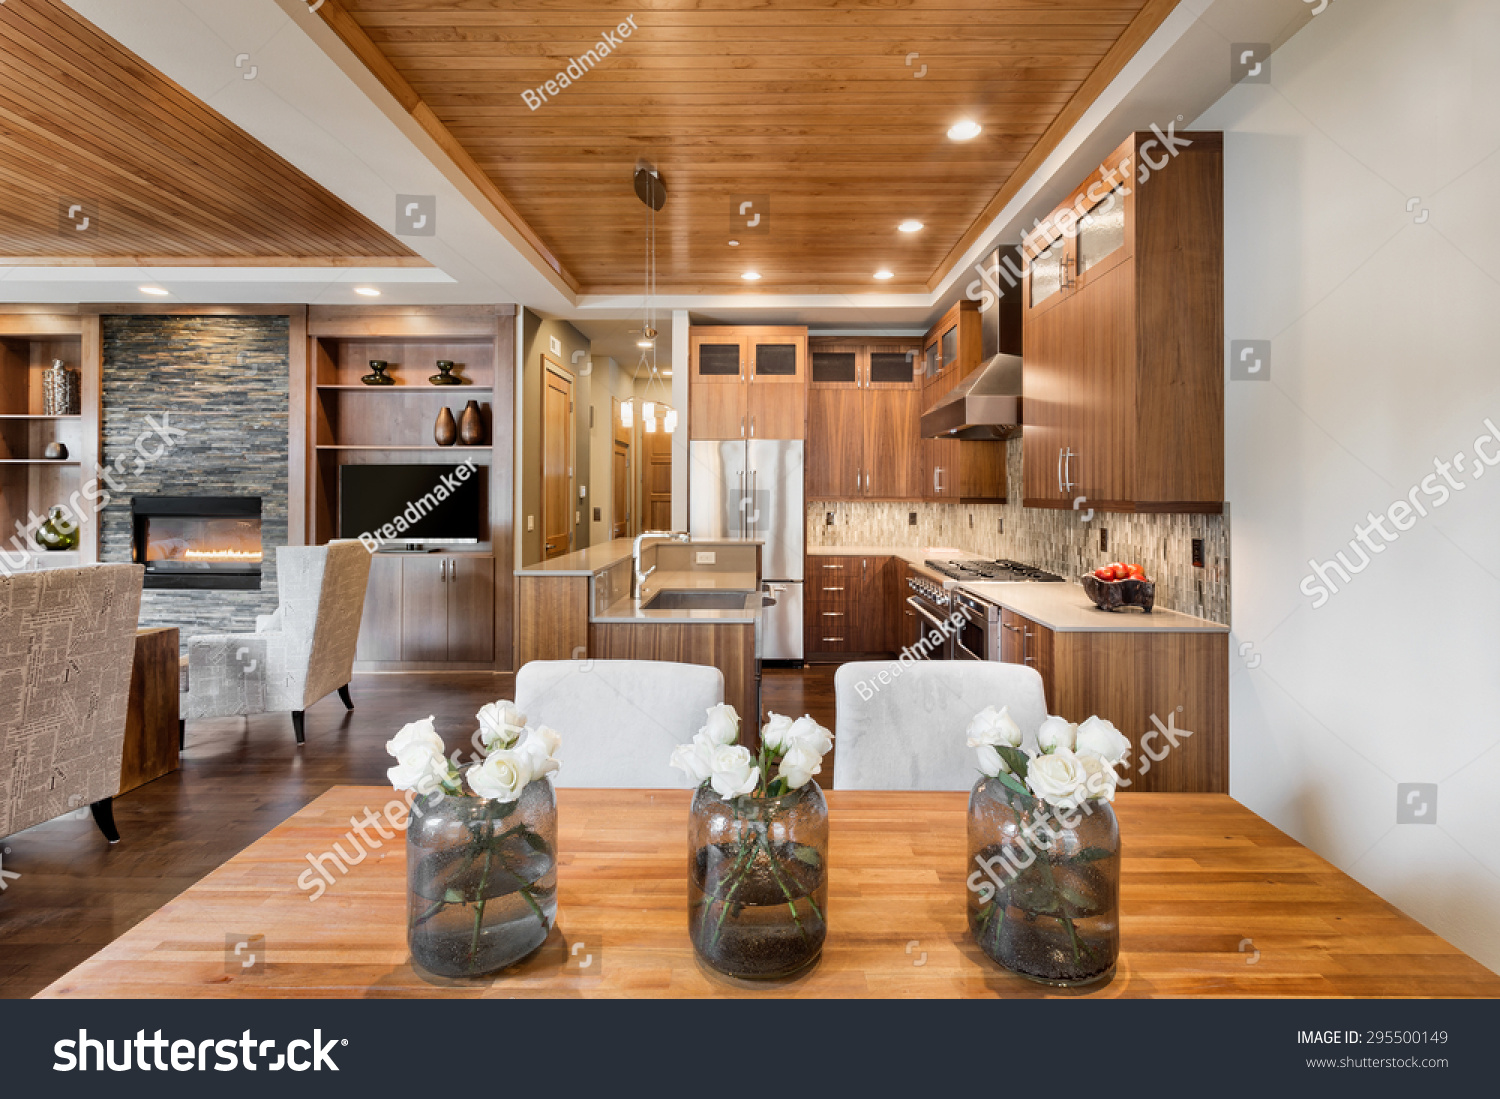 Beautiful home interior open floor plan stock photo for Beautiful ceilings and interiors